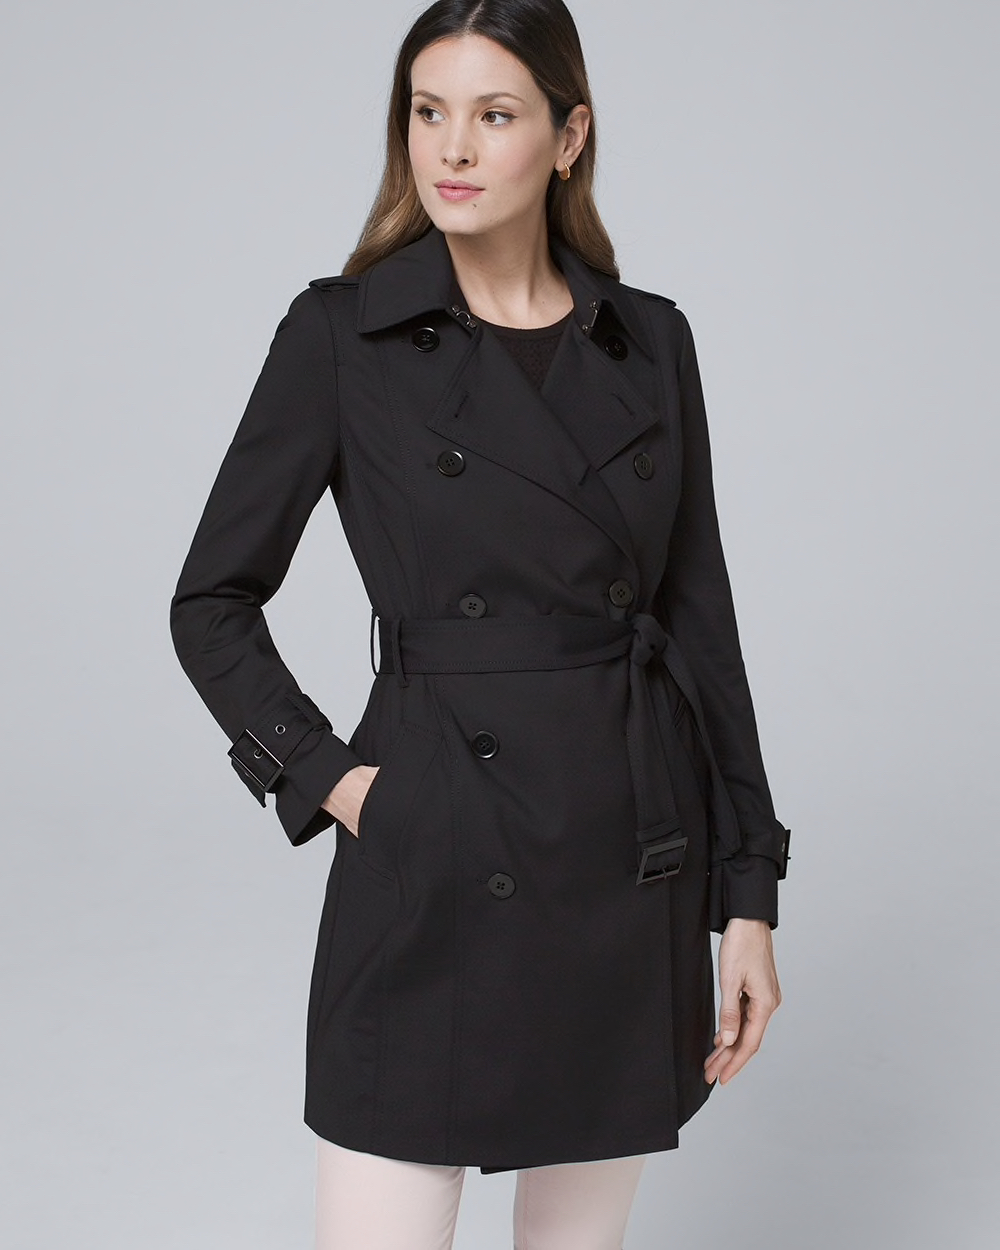 Capsule Wardrobe Jackets Classic Trench Coat